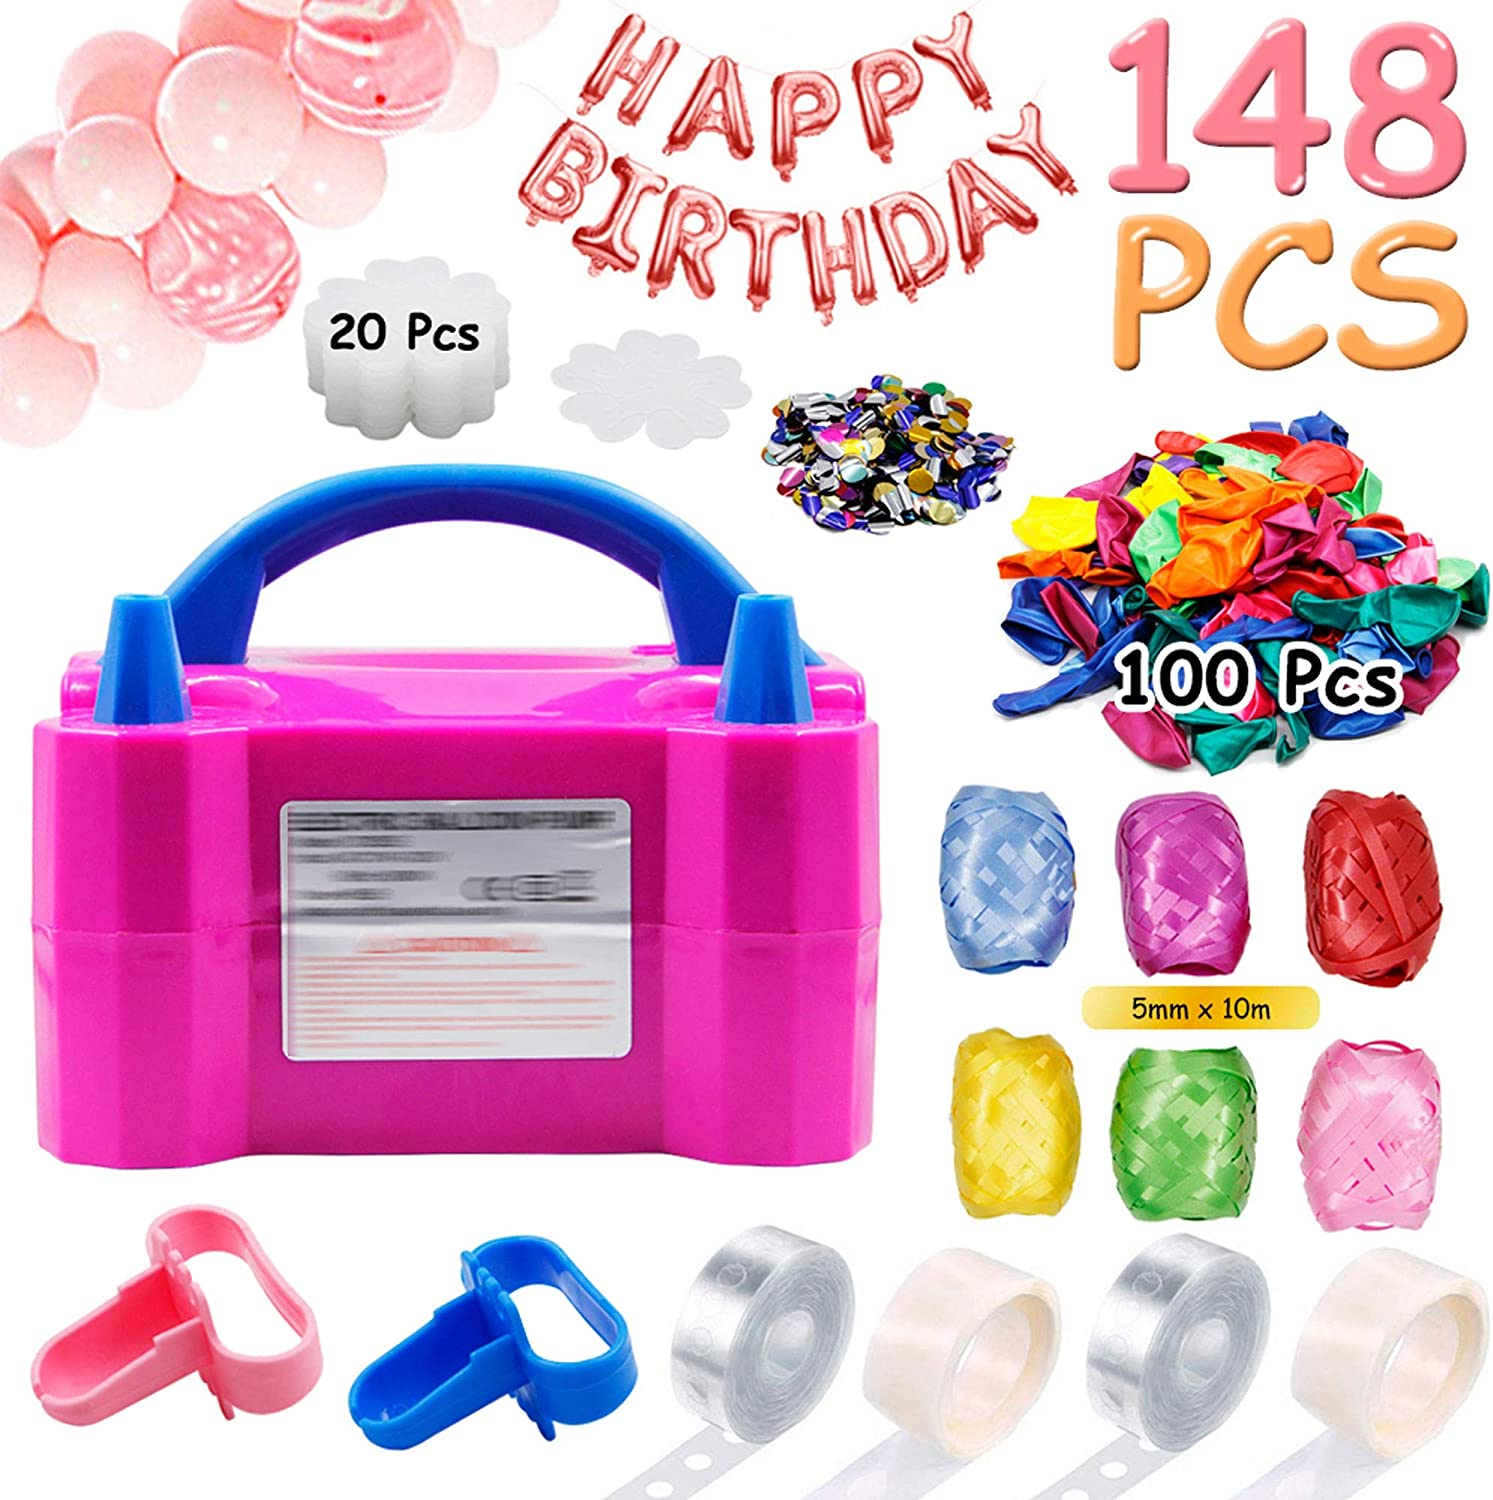 DR.DUDU Balloon Pump,Portable Dual Nozzles Electric Balloon Air Pump(110V 600W), 113 PCS Party Balloons Set with Tying Tools, Colored Ribbons, 20 Flower Clips, Tape Strip, and Dot Glues for Party Decoration